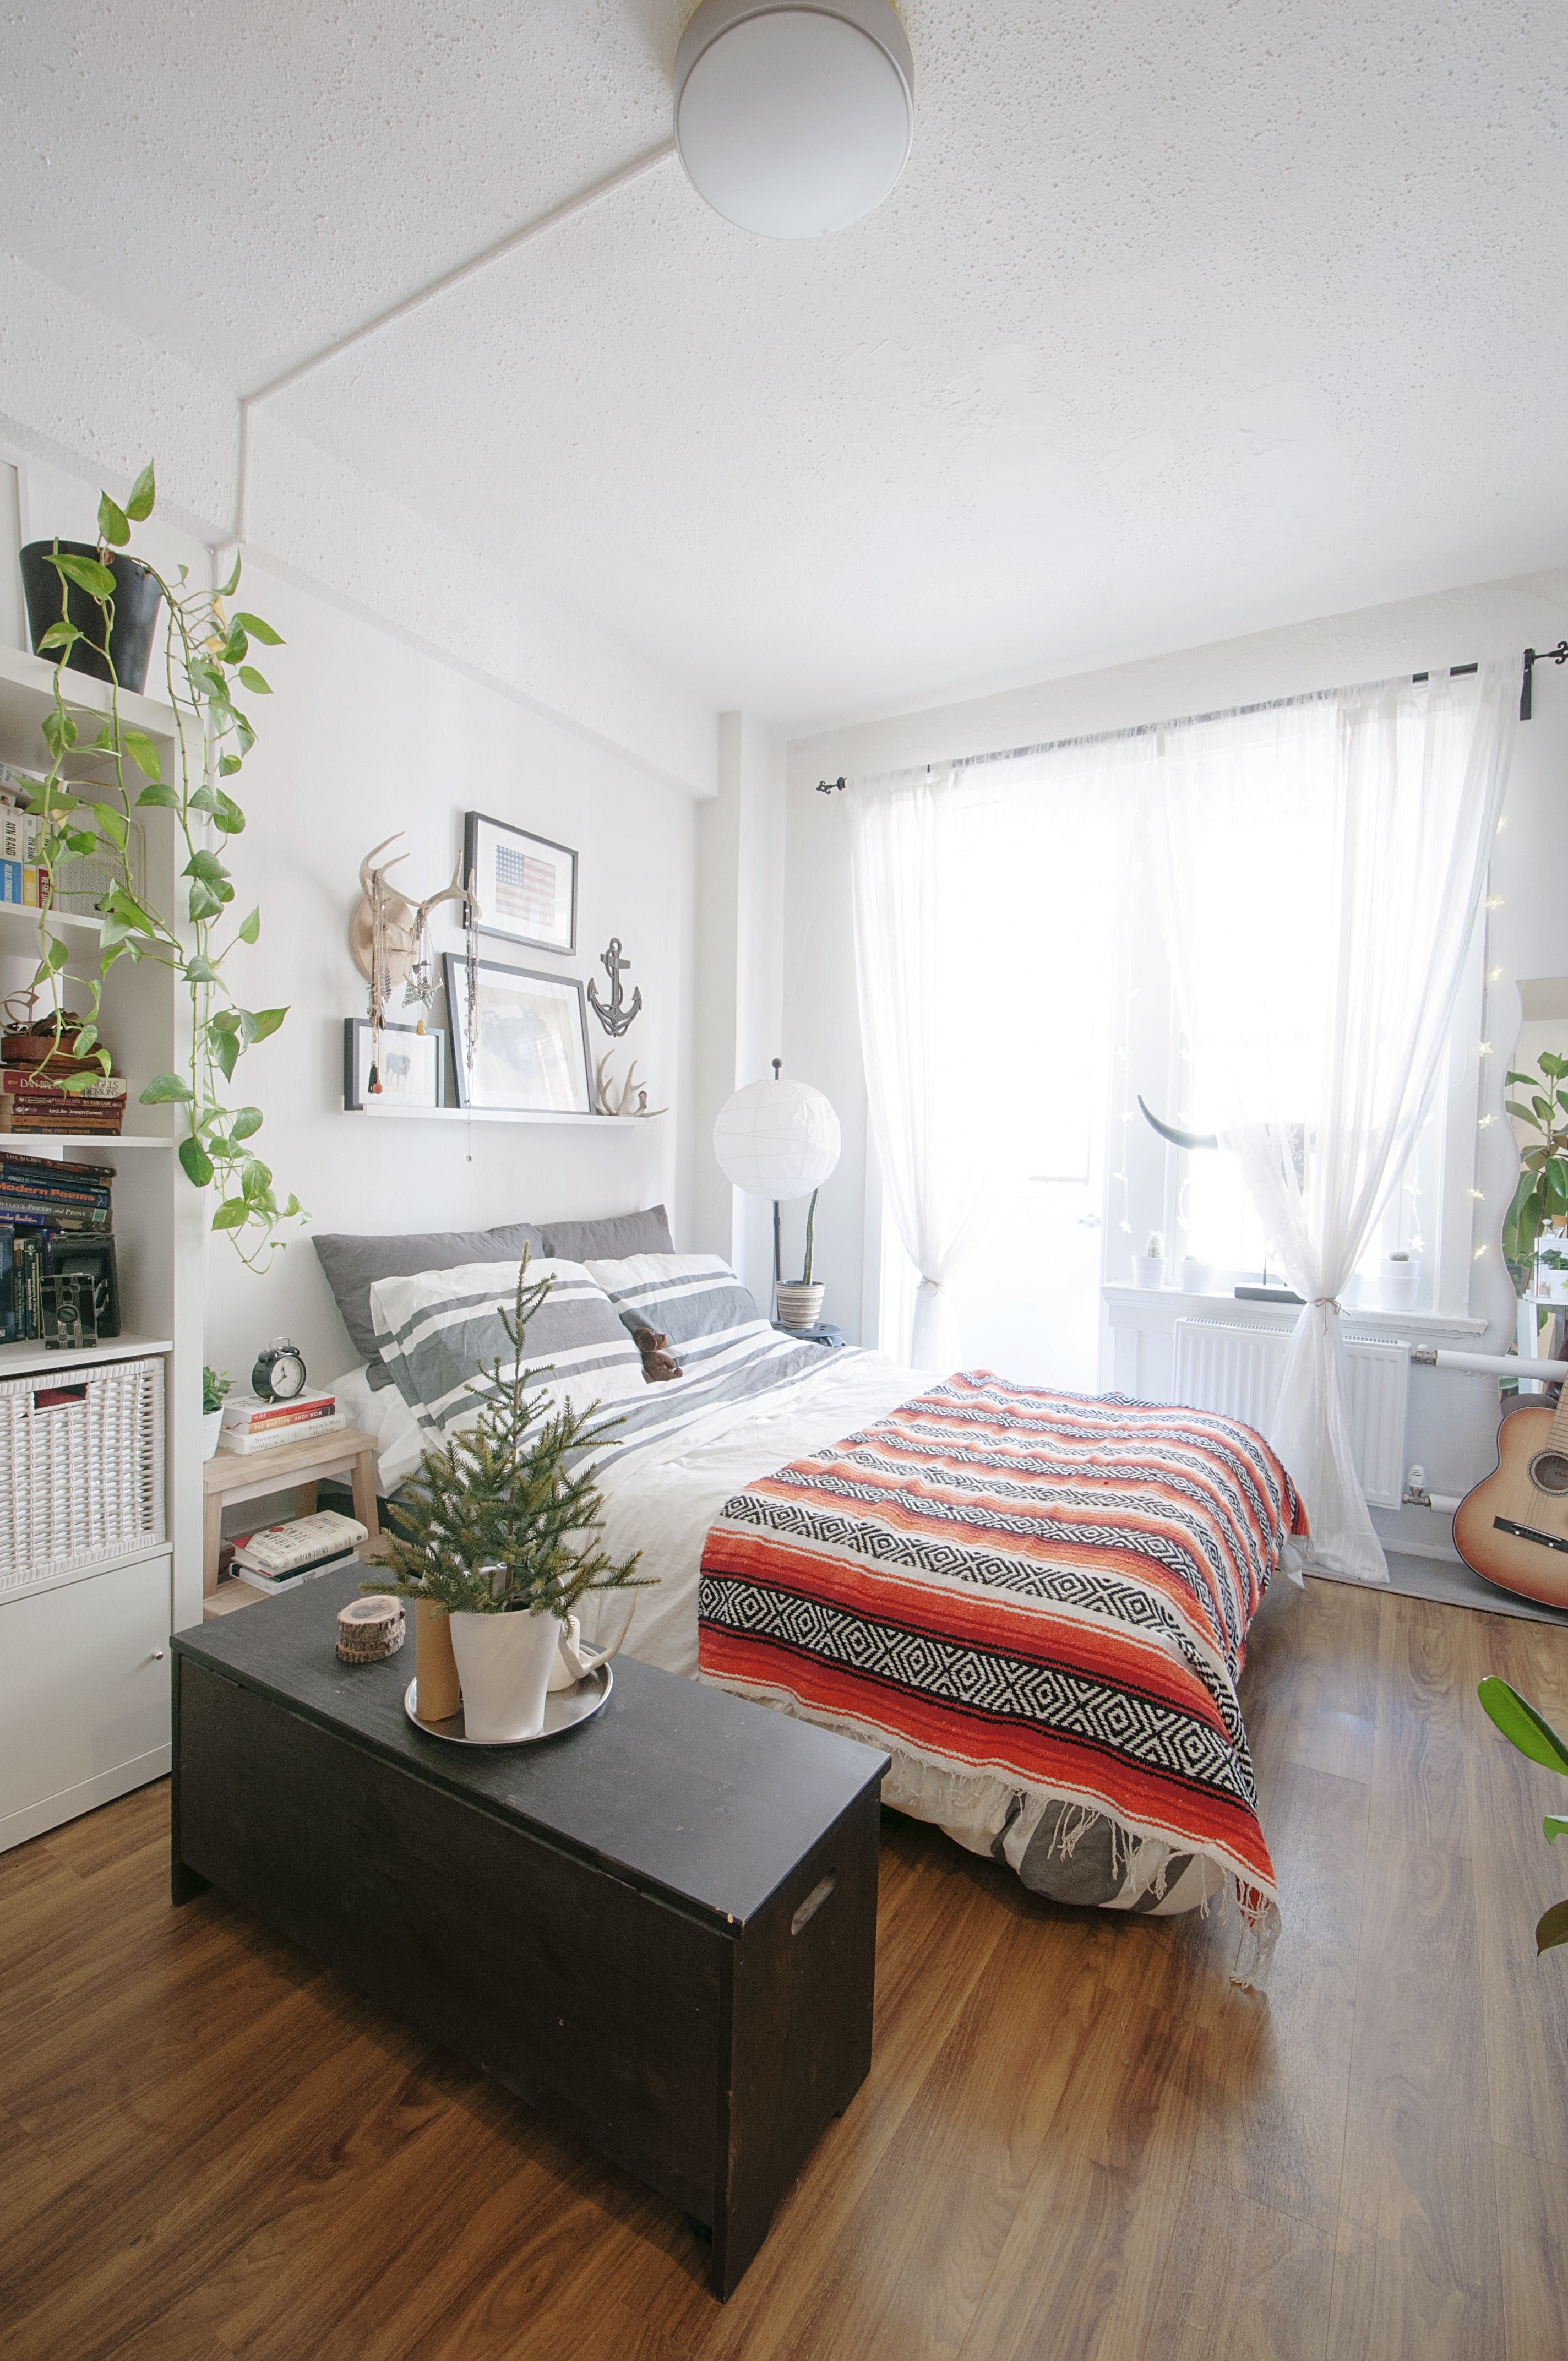 5 Slaapkamer Appartement 5 Studio Apartment Layouts That Just Plain Work Houses Tiener